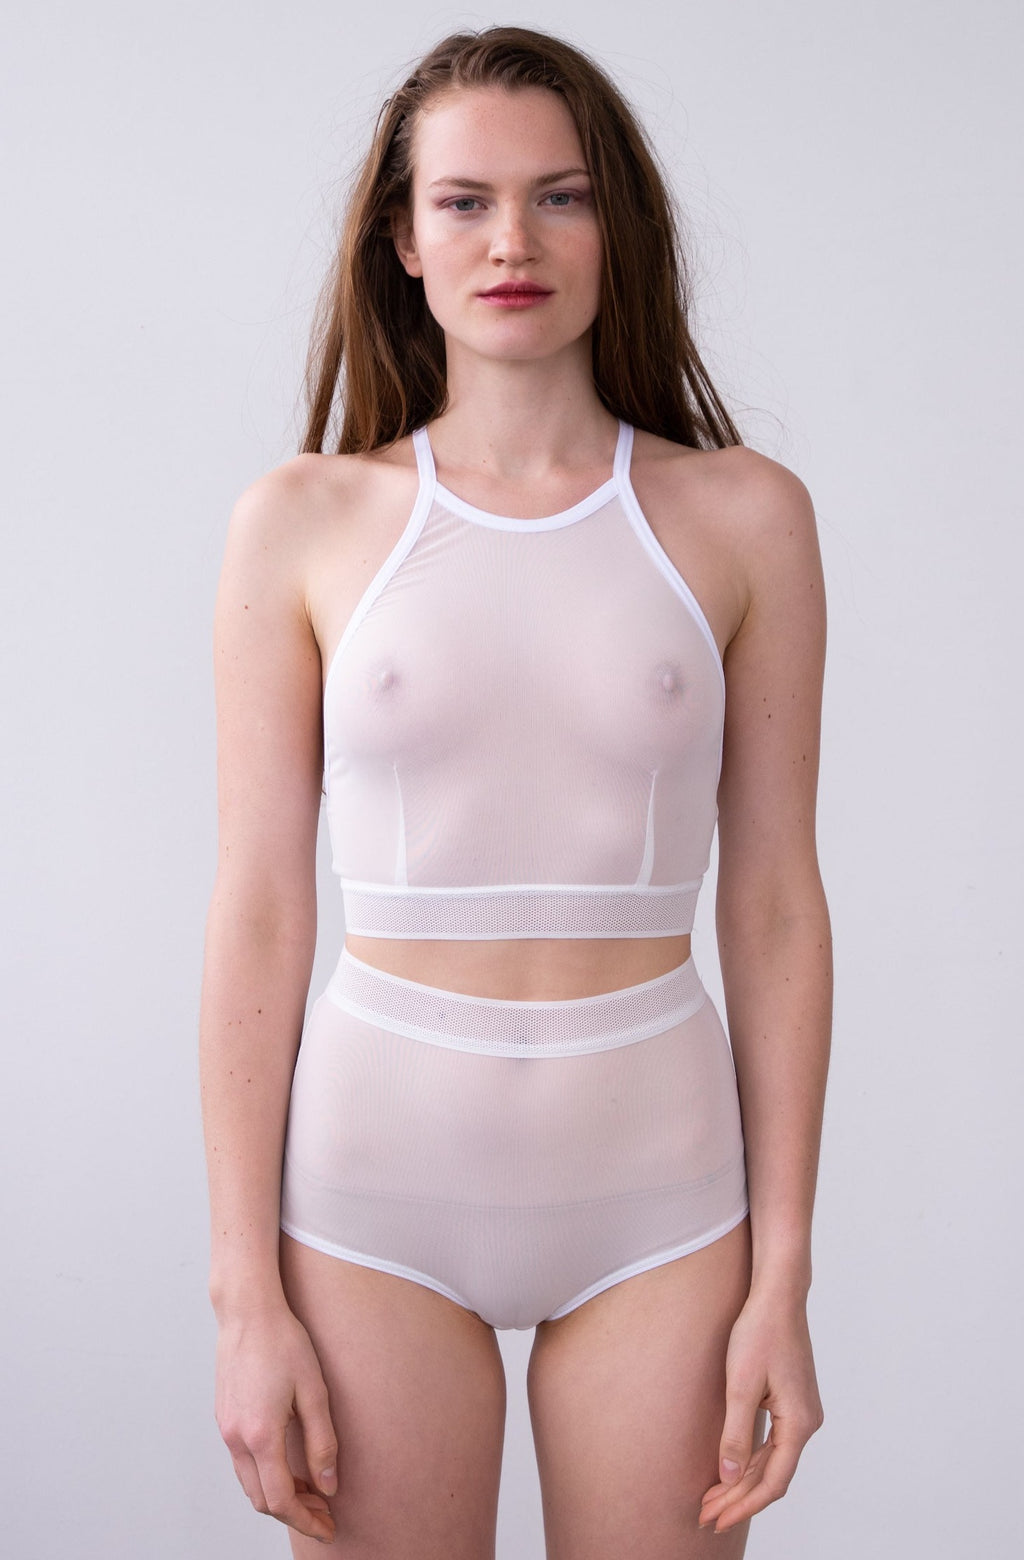 Leeda: bra - CLARA CROP TOP IN WHITE MESH